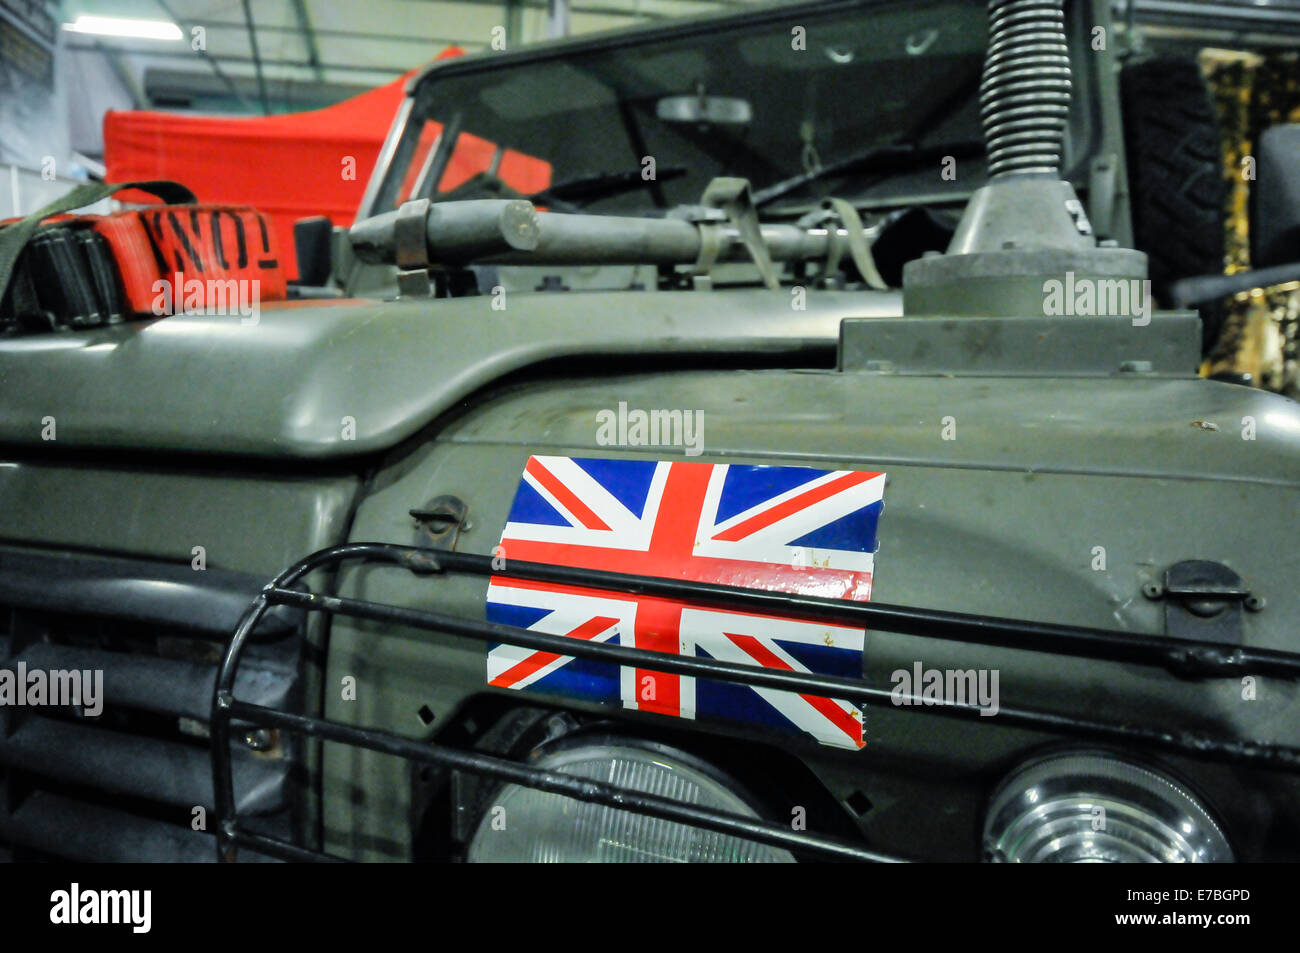 Union flag on the front of a British Army vehicle. - Stock Image